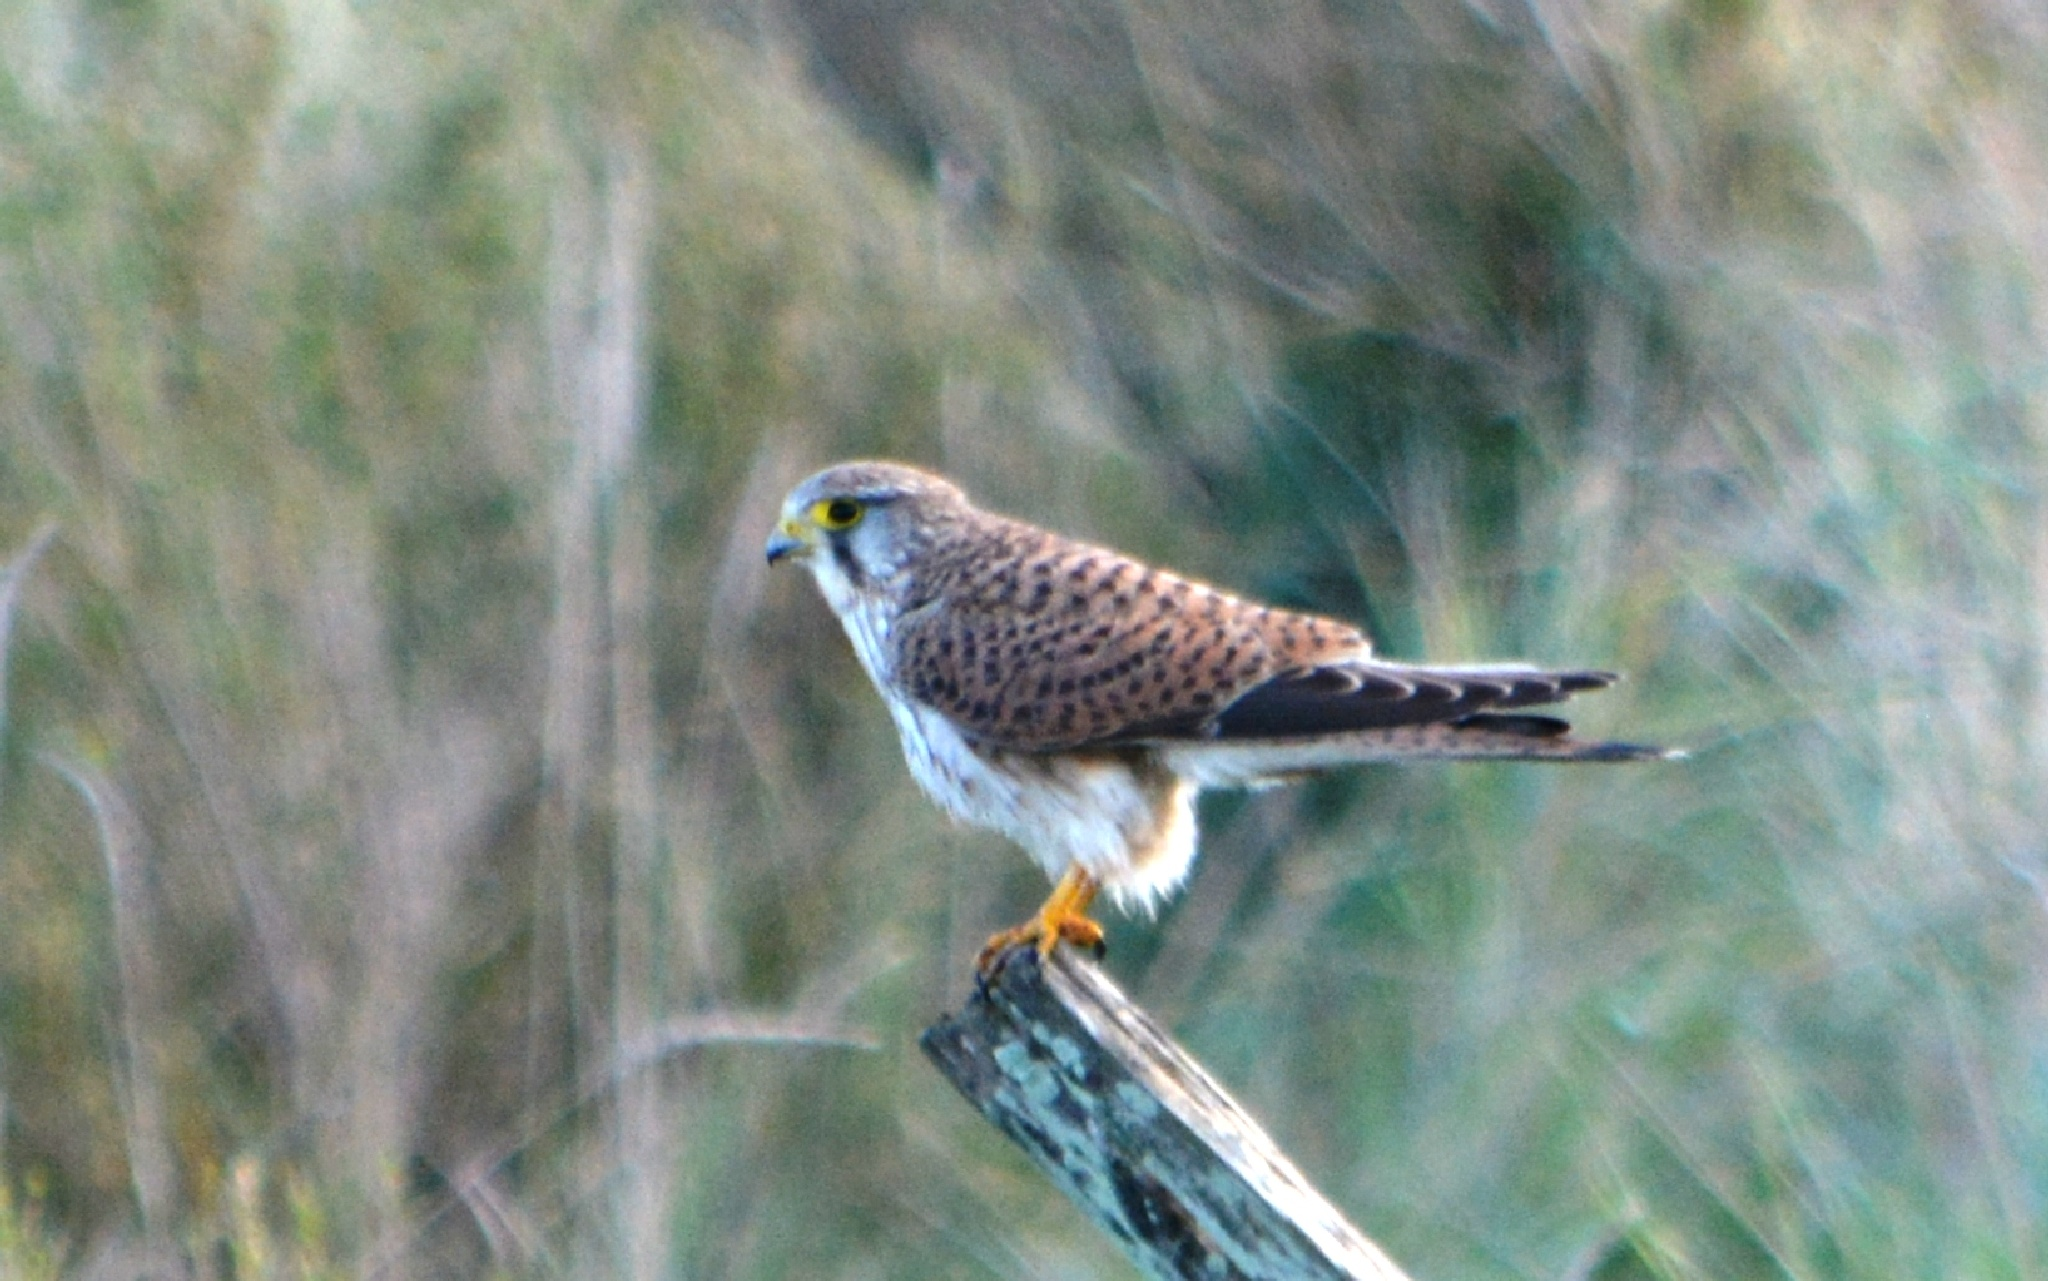 Kestrel in the wetlands by alison16